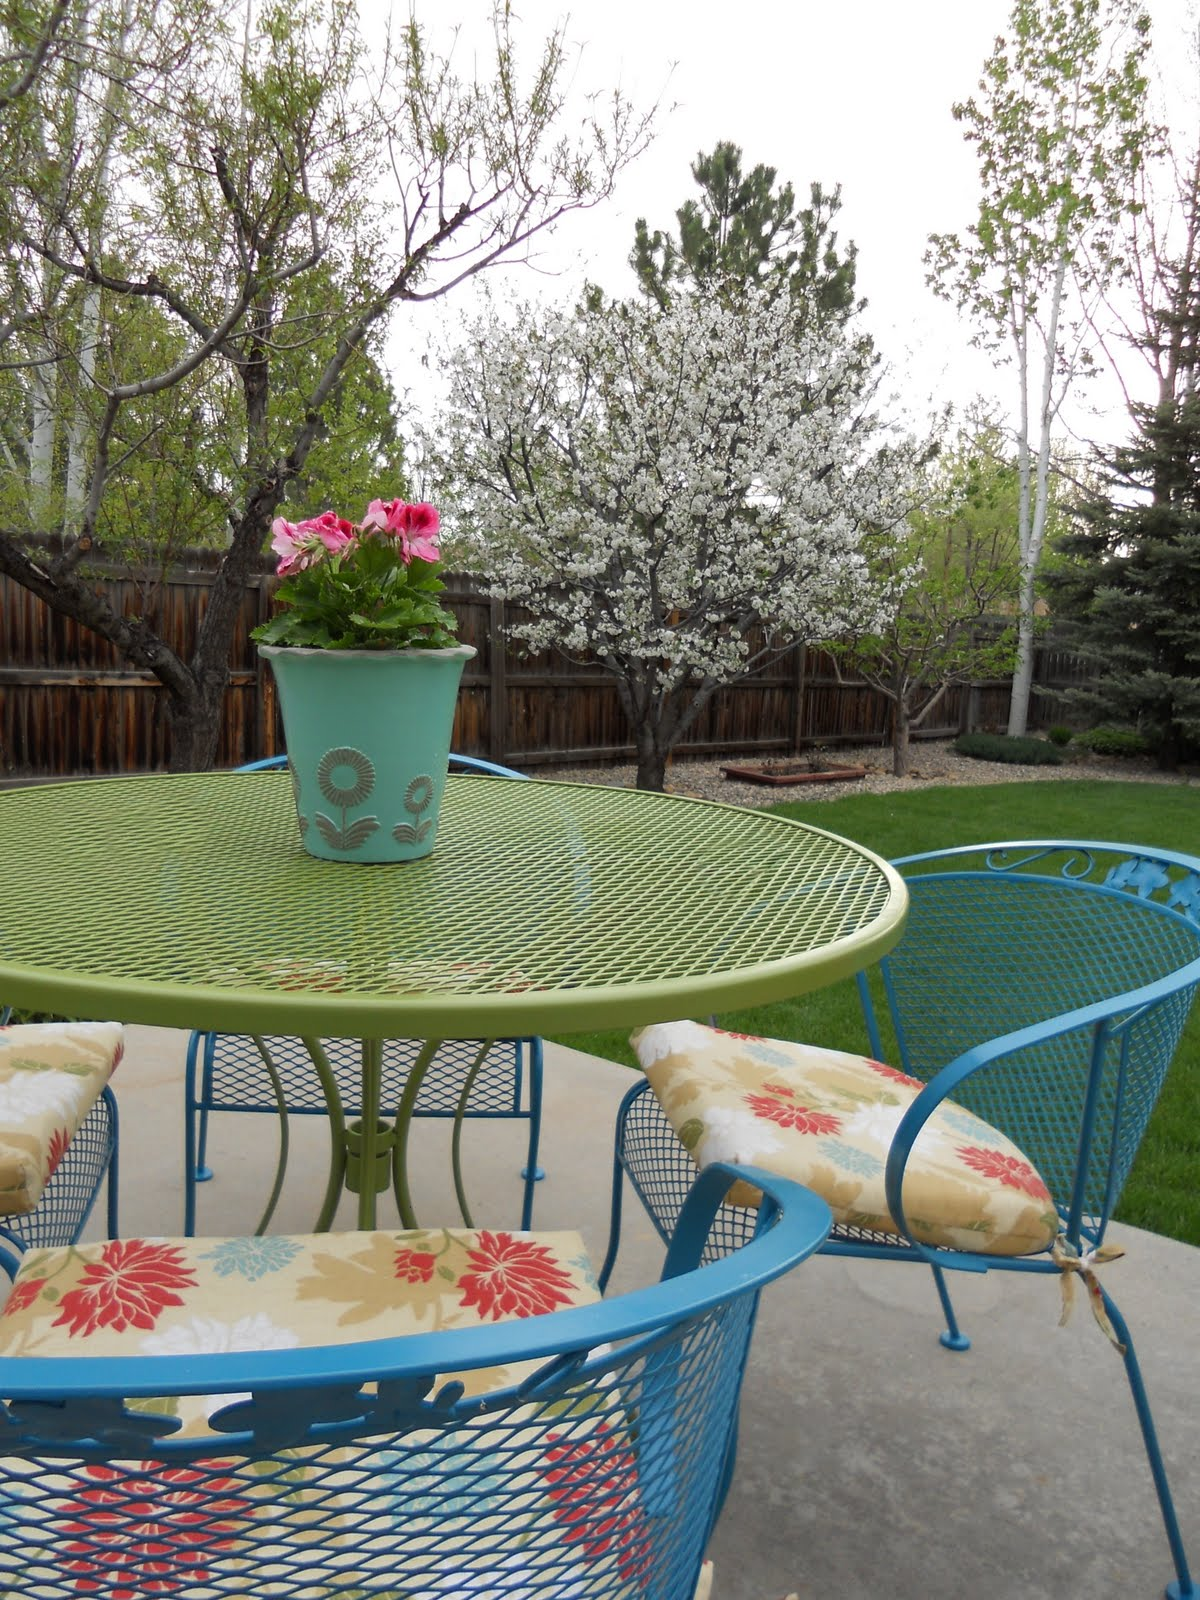 Just Another Hang Up: Patio Furniture Redo